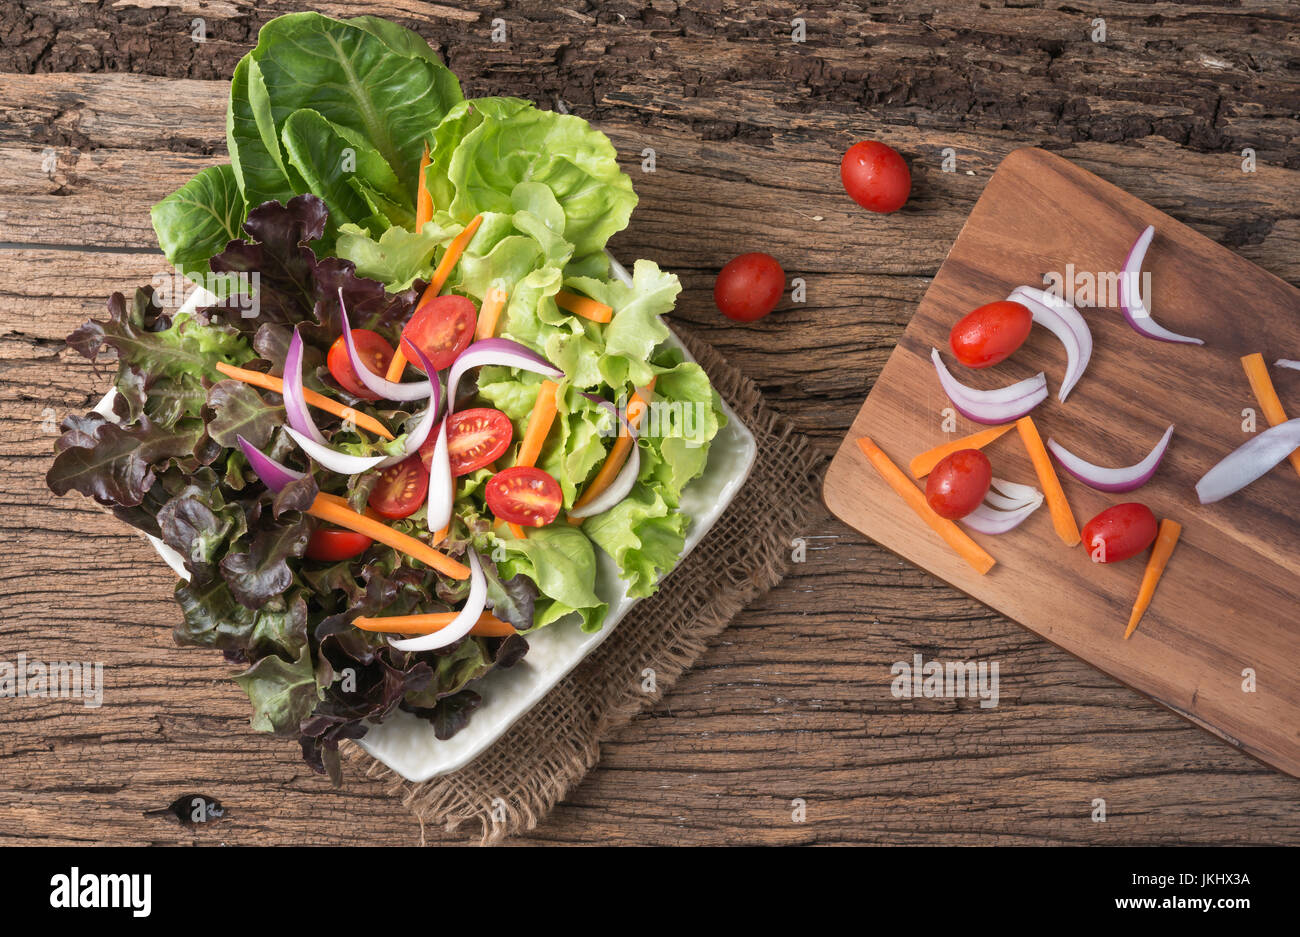 Red Oak and Green Oak salad and fresh vegetables  on wood background - Stock Image